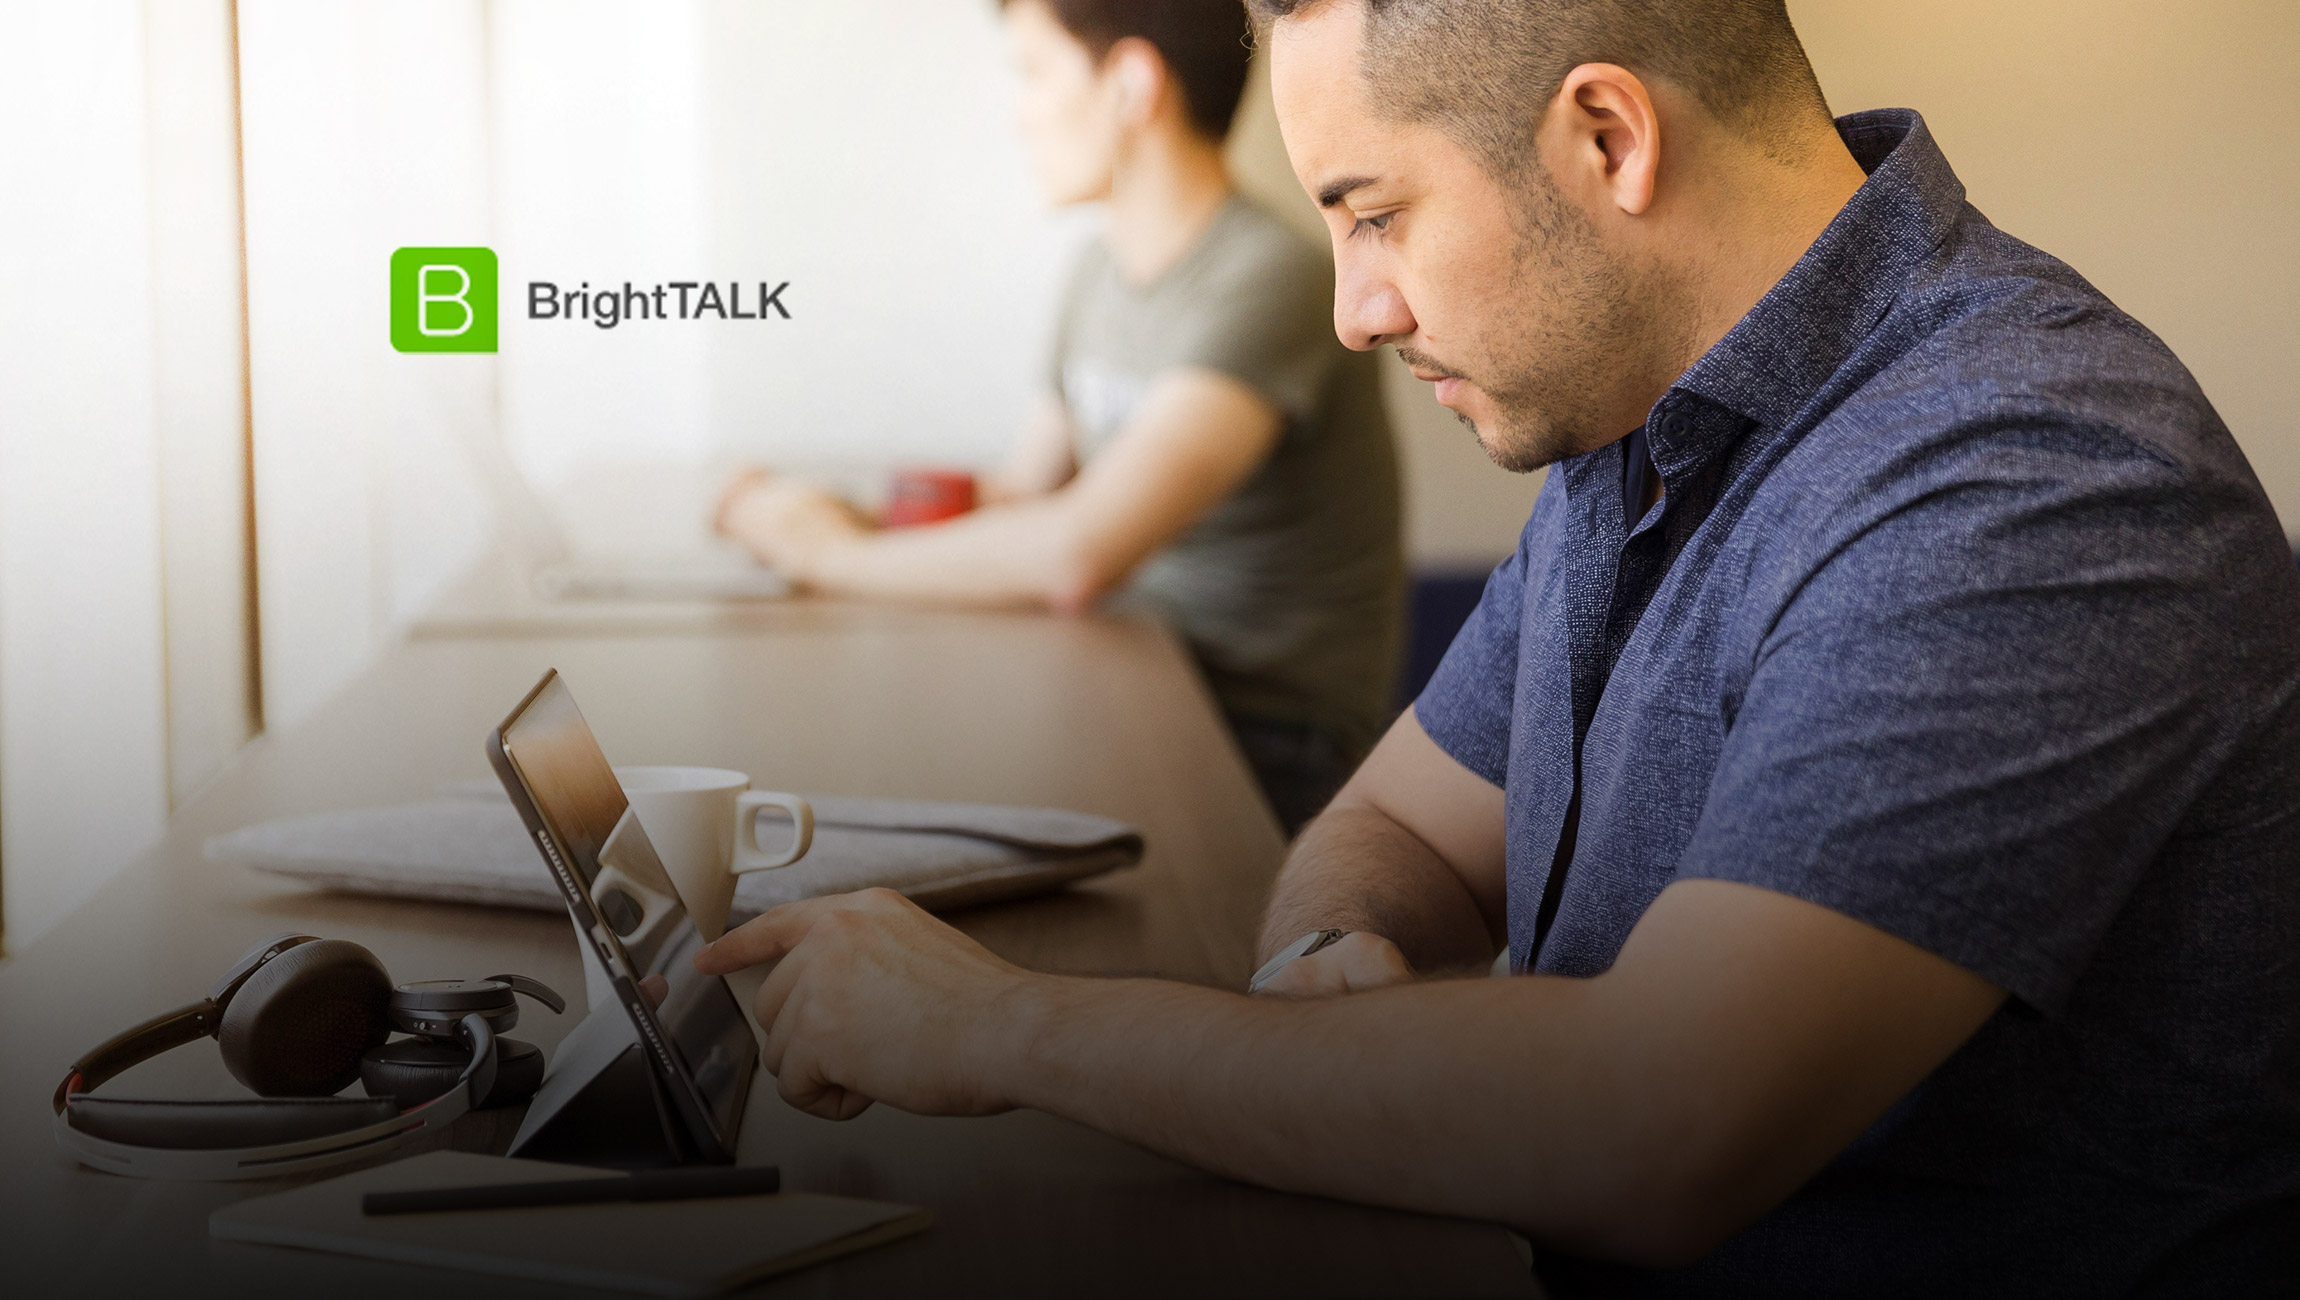 BrightTALK Helps Marketers Build and Execute Winning Demand Generation Programs